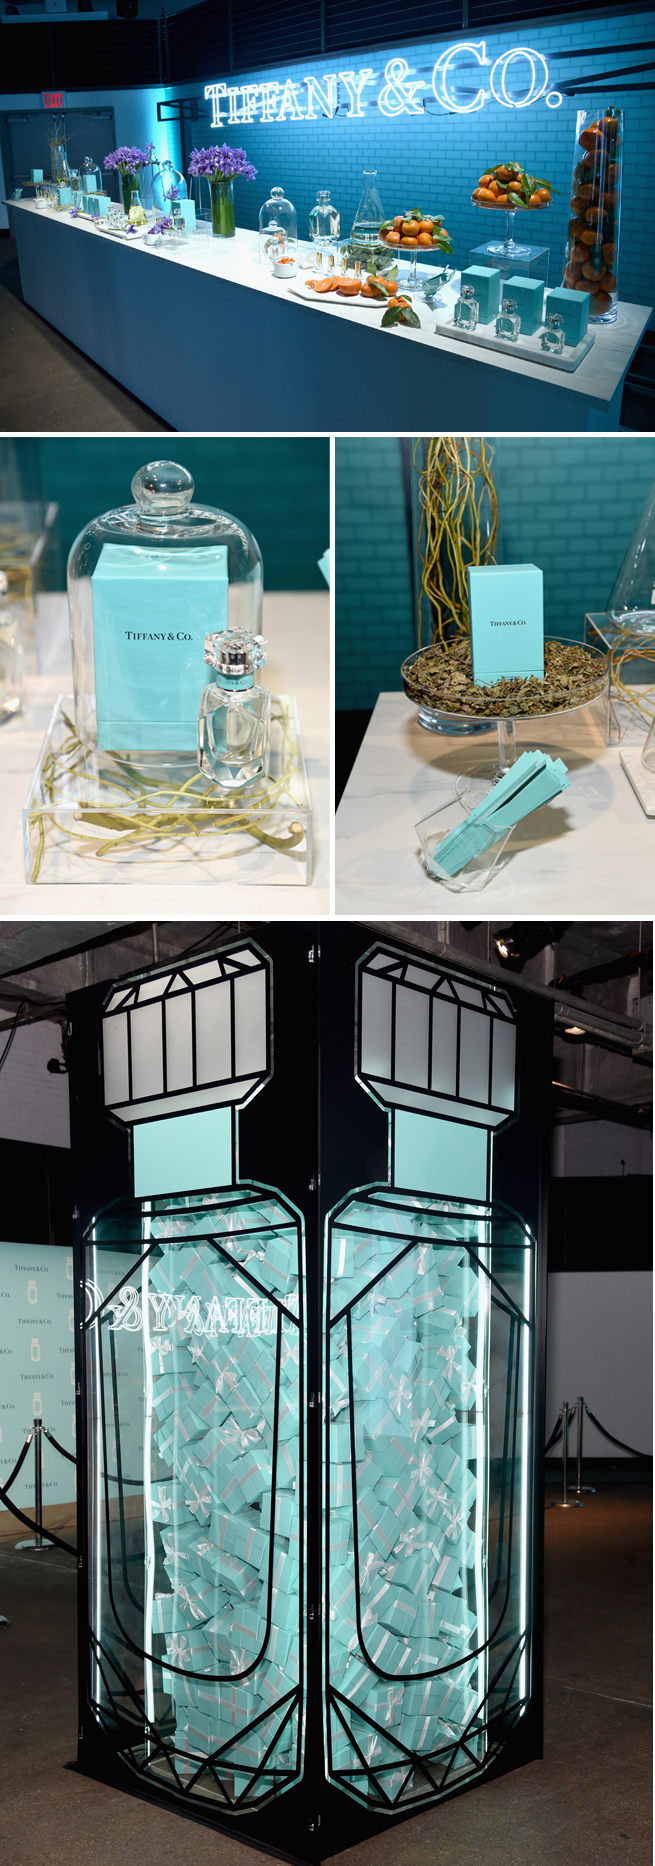 Perfect Wedding Magazine, Perfect Wedding Blog, New York Fashion Week, Tiffany&Co, Tiffany Fragrance, Bridal Fragrance, Arts, Entertainment,